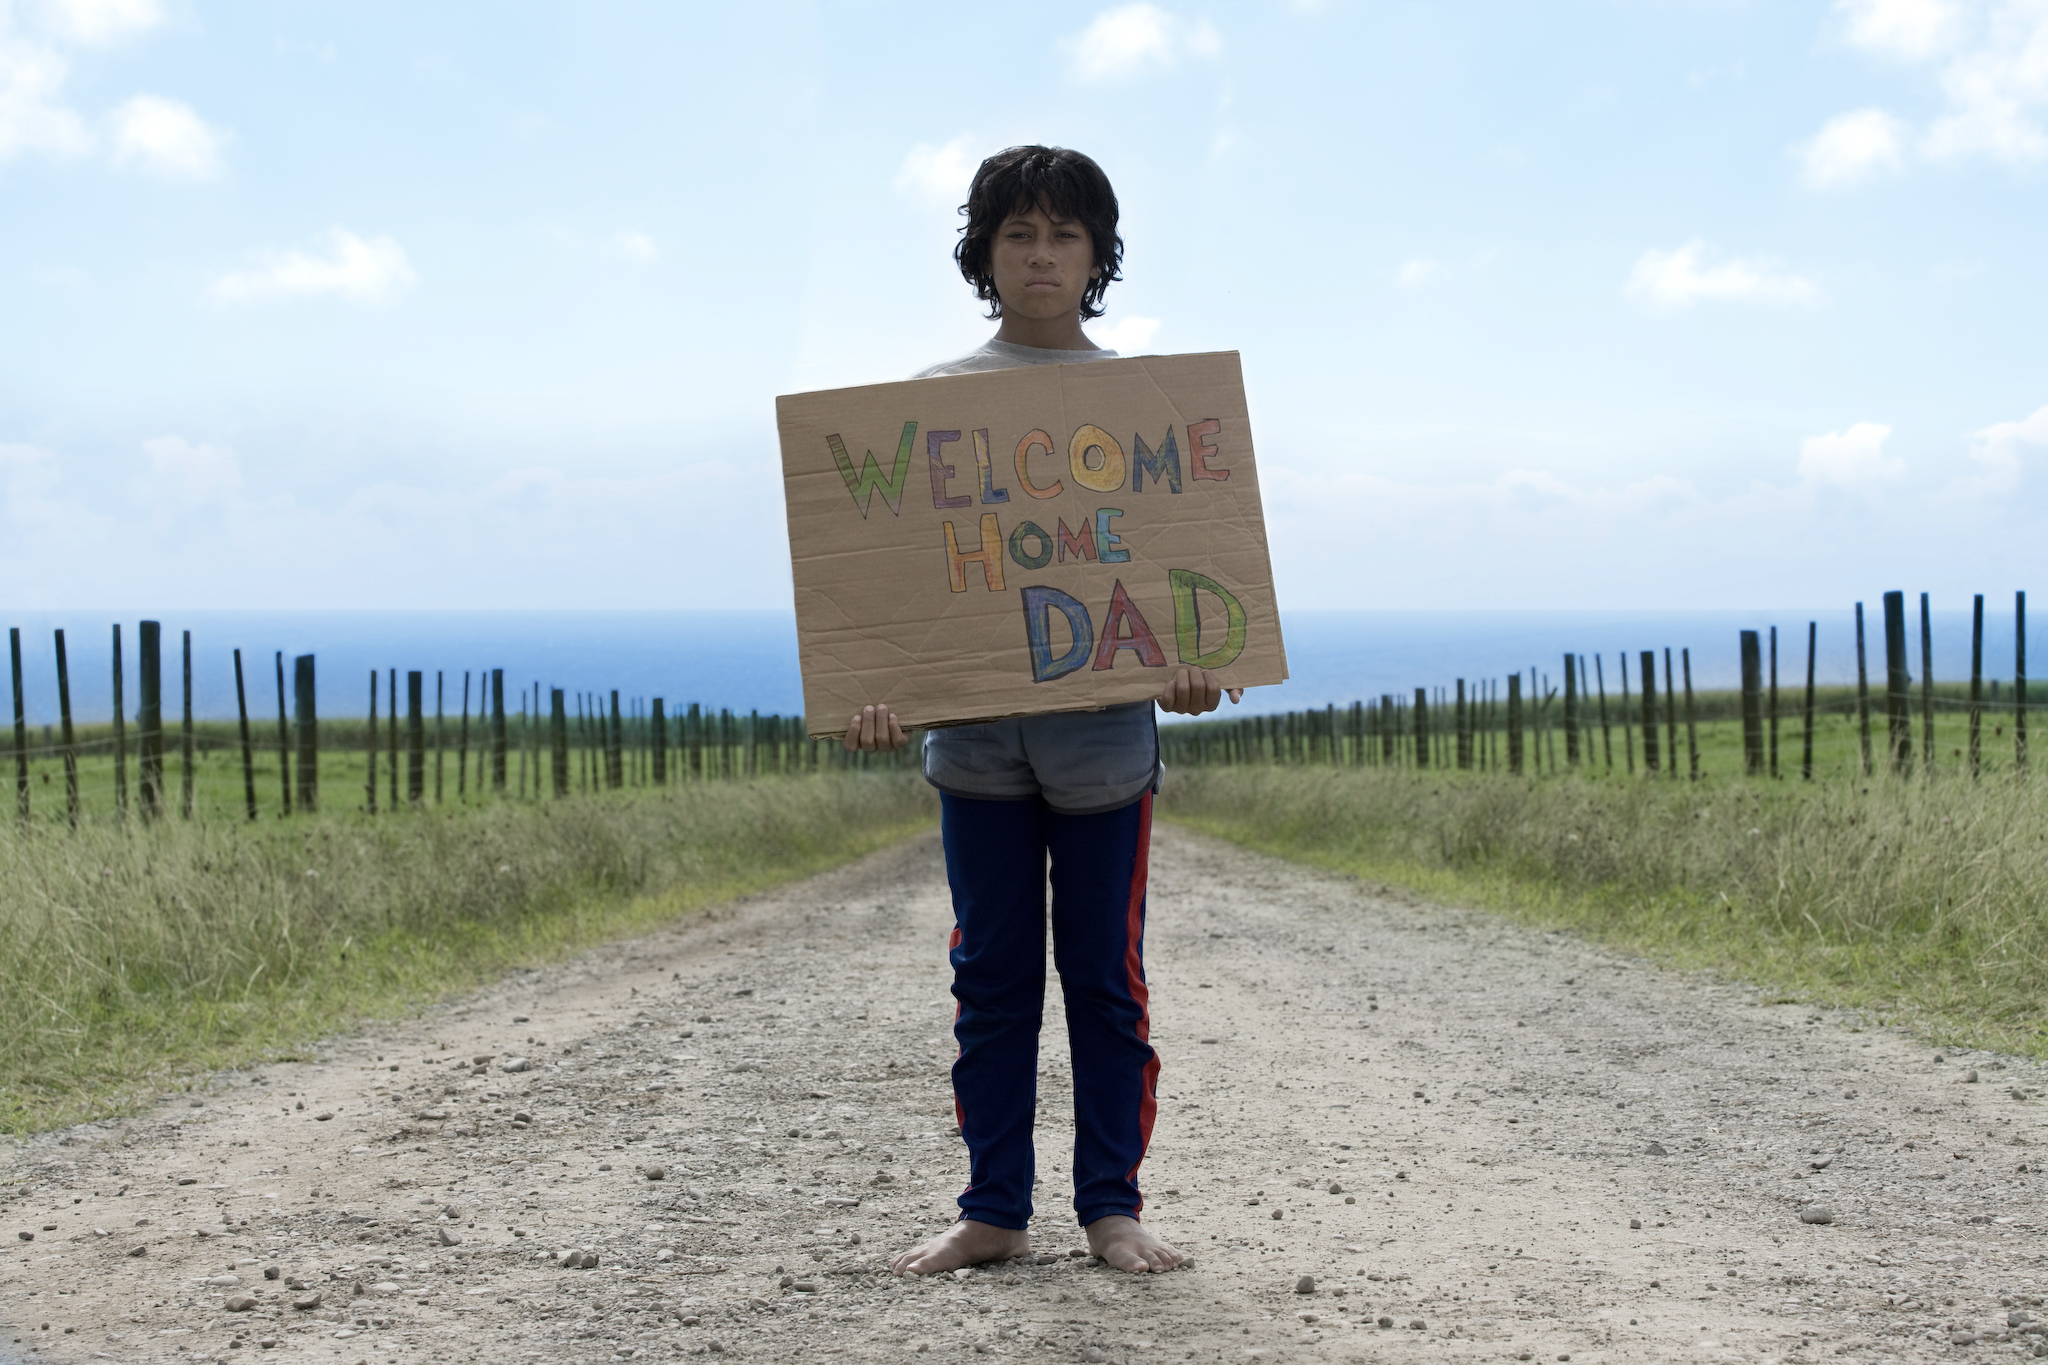 New Zealand hit comedy Boy comes to U.S. theaters